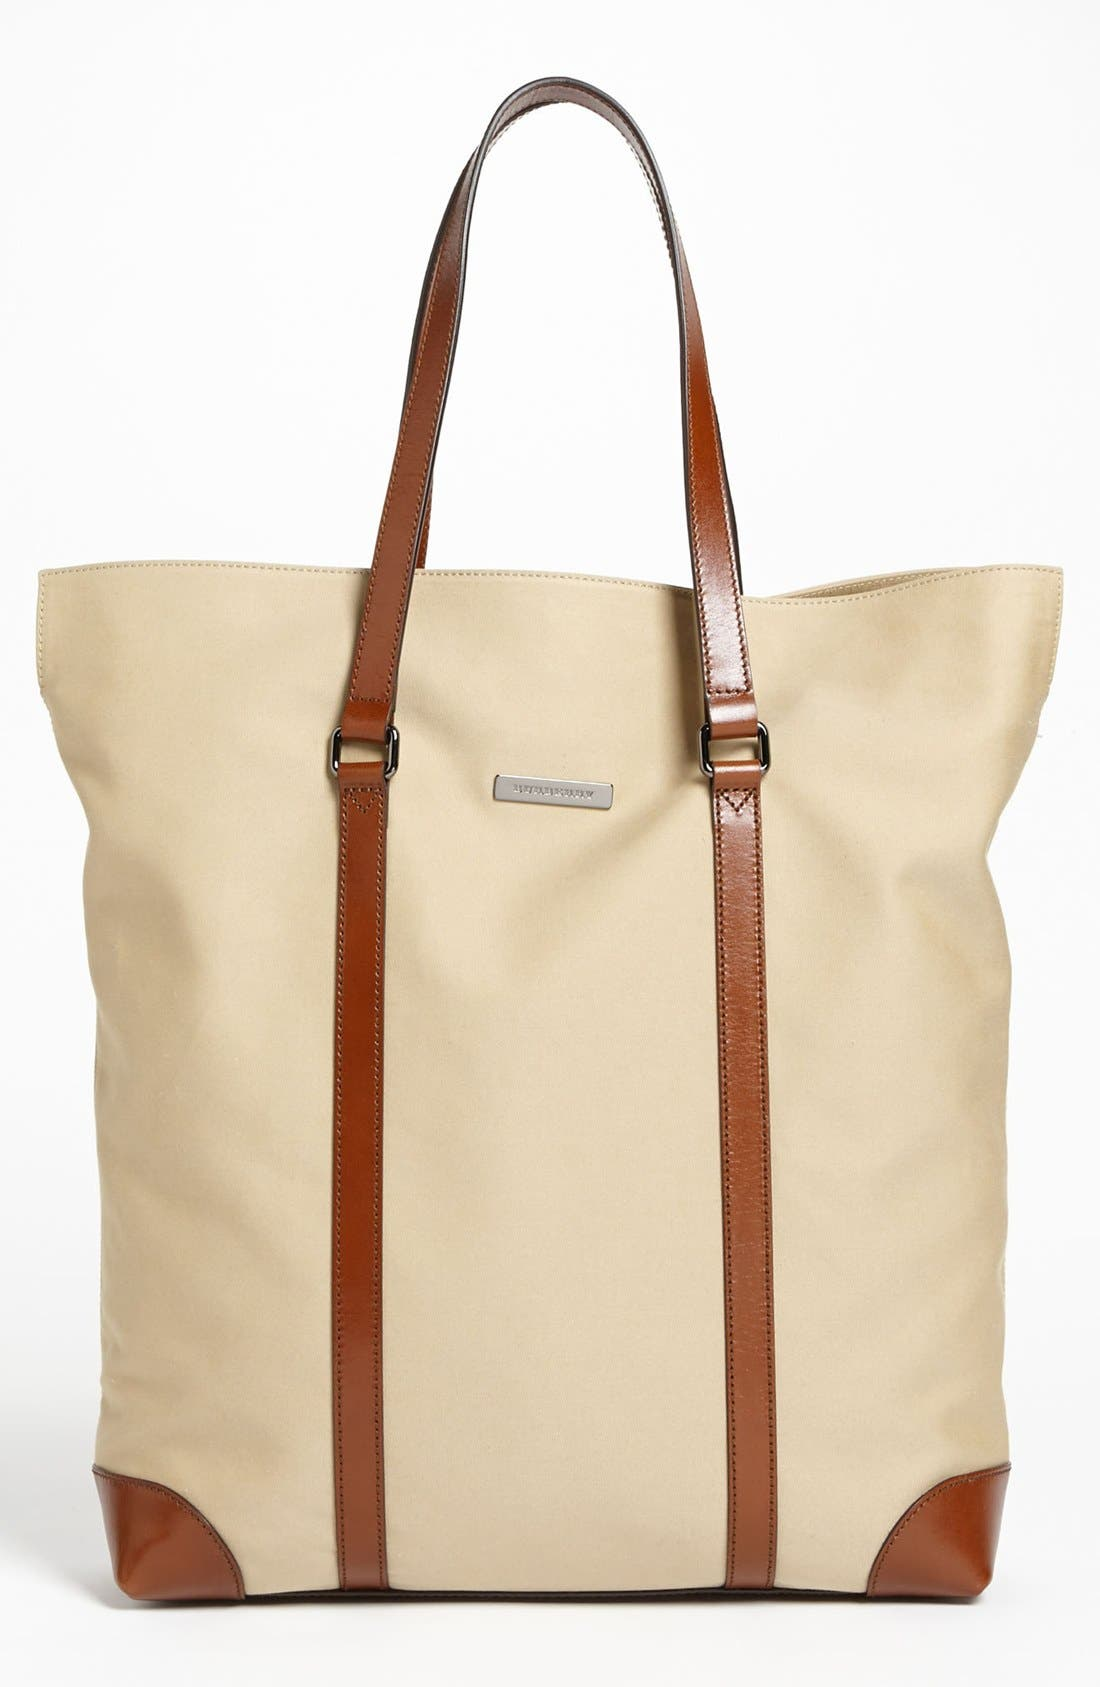 Alternate Image 1 Selected - Burberry 'Chesson' Tote Bag